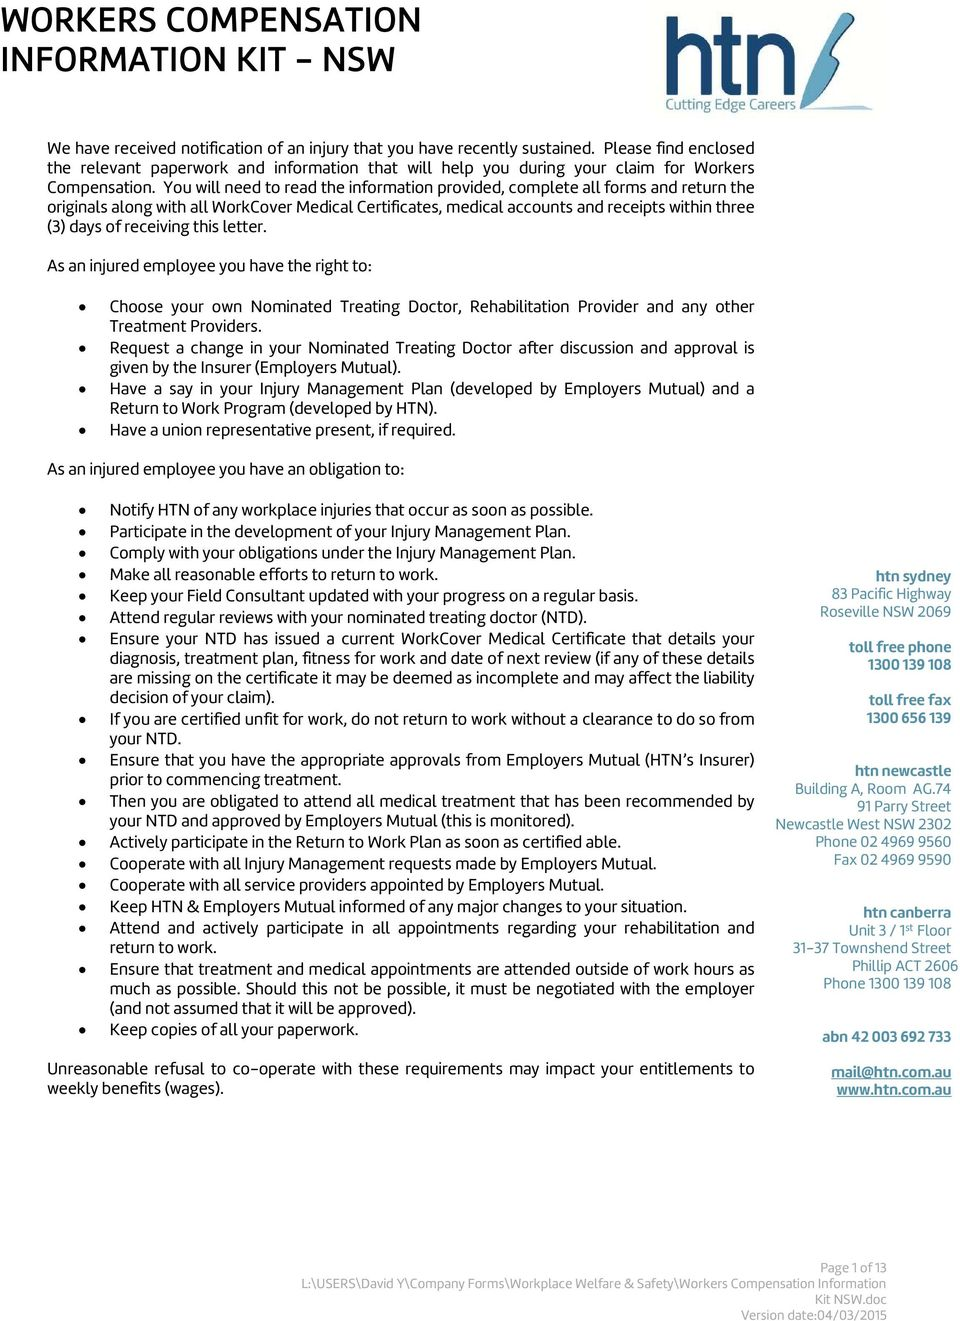 WORKERS COMPENSATION INFORMATION KIT - NSW - PDF